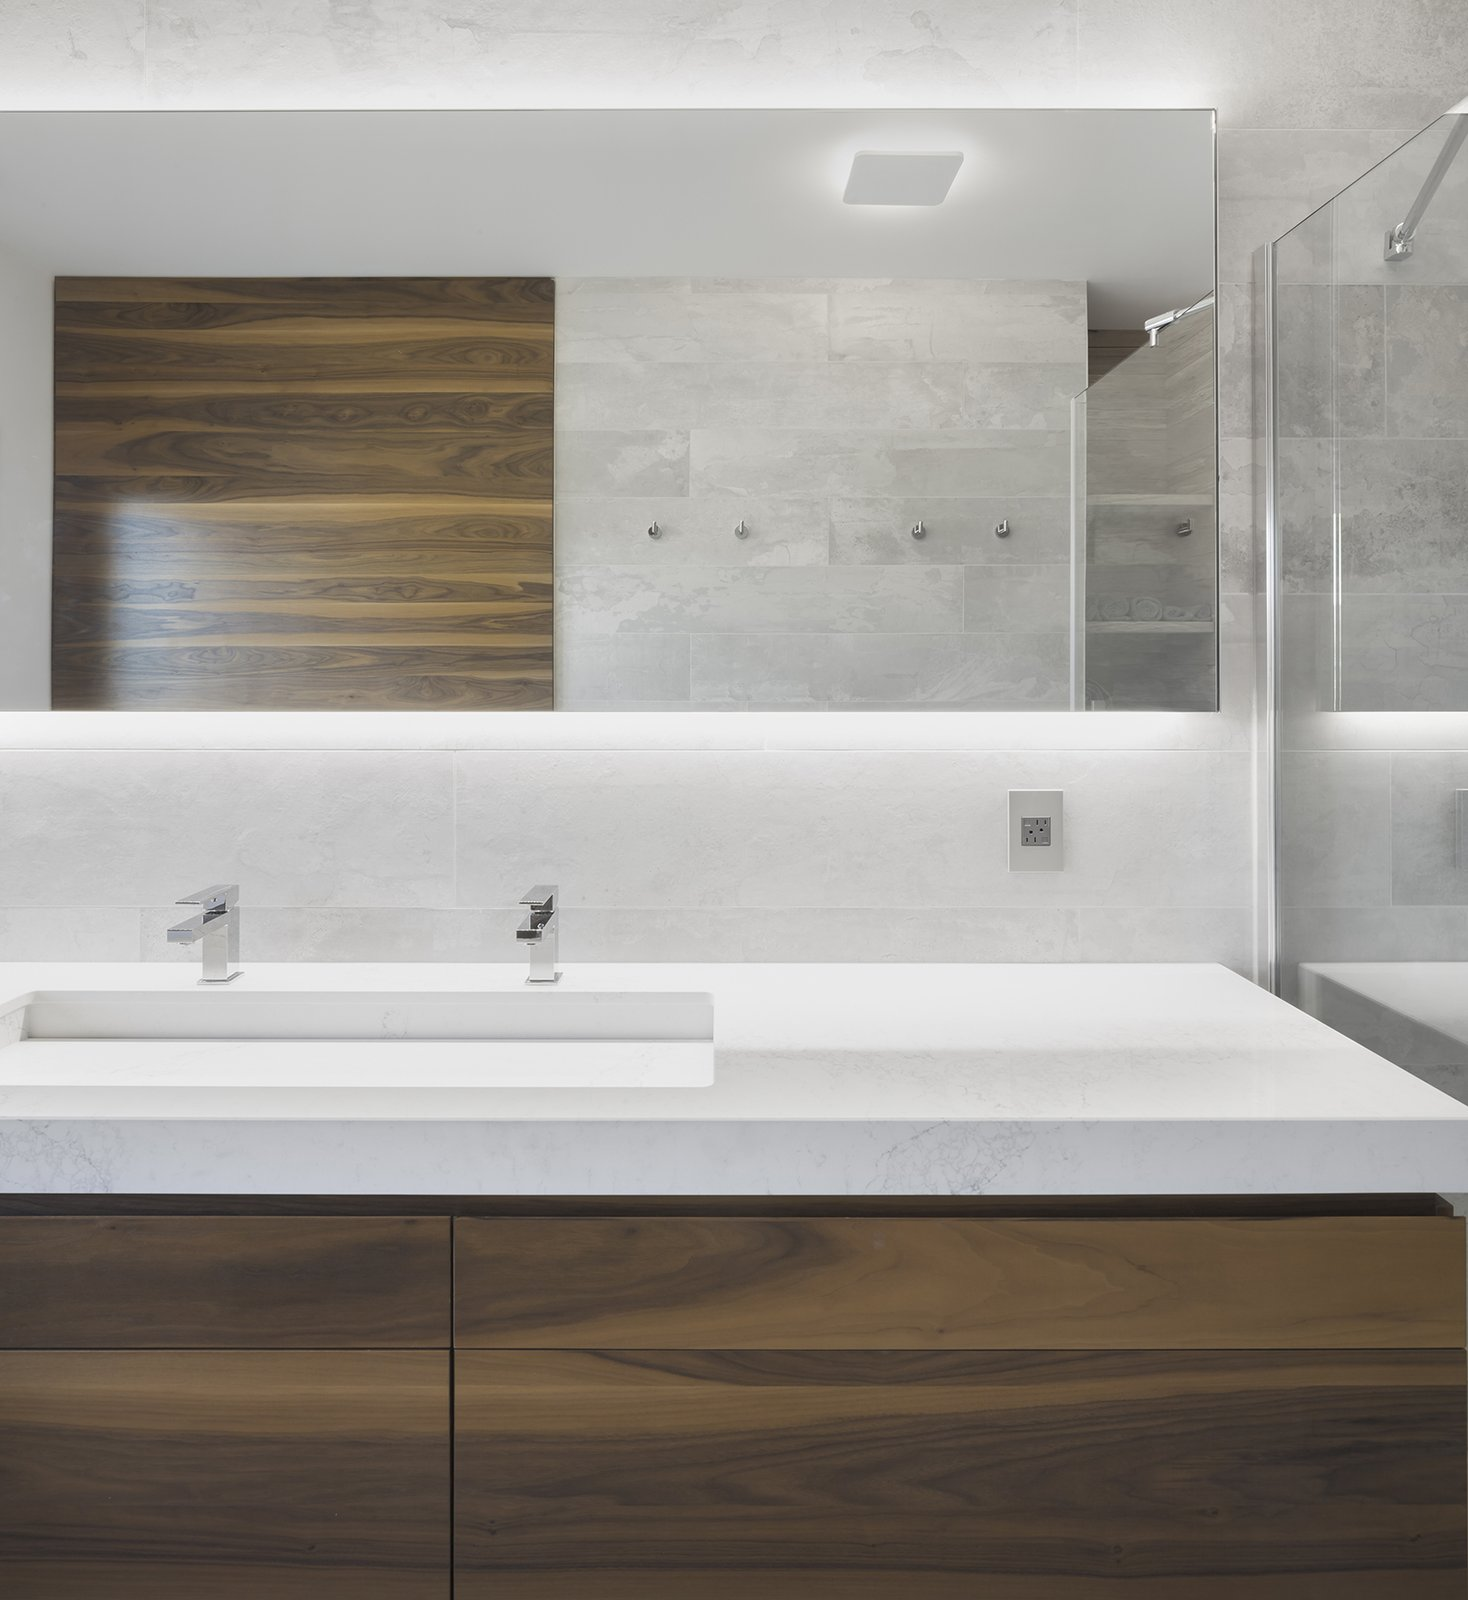 Bath Room, Undermount Sink, Ceiling Lighting, and Wall Lighting In modern bathroom vanities, rectangular shapes abound. The shape is showcased on this geometric vanity, where the drawers, countertop, sink, and knobs are all rectangular.  Photo 7 of 25 in 25 Best Modern Bathroom Vanities For Your Home from r3R